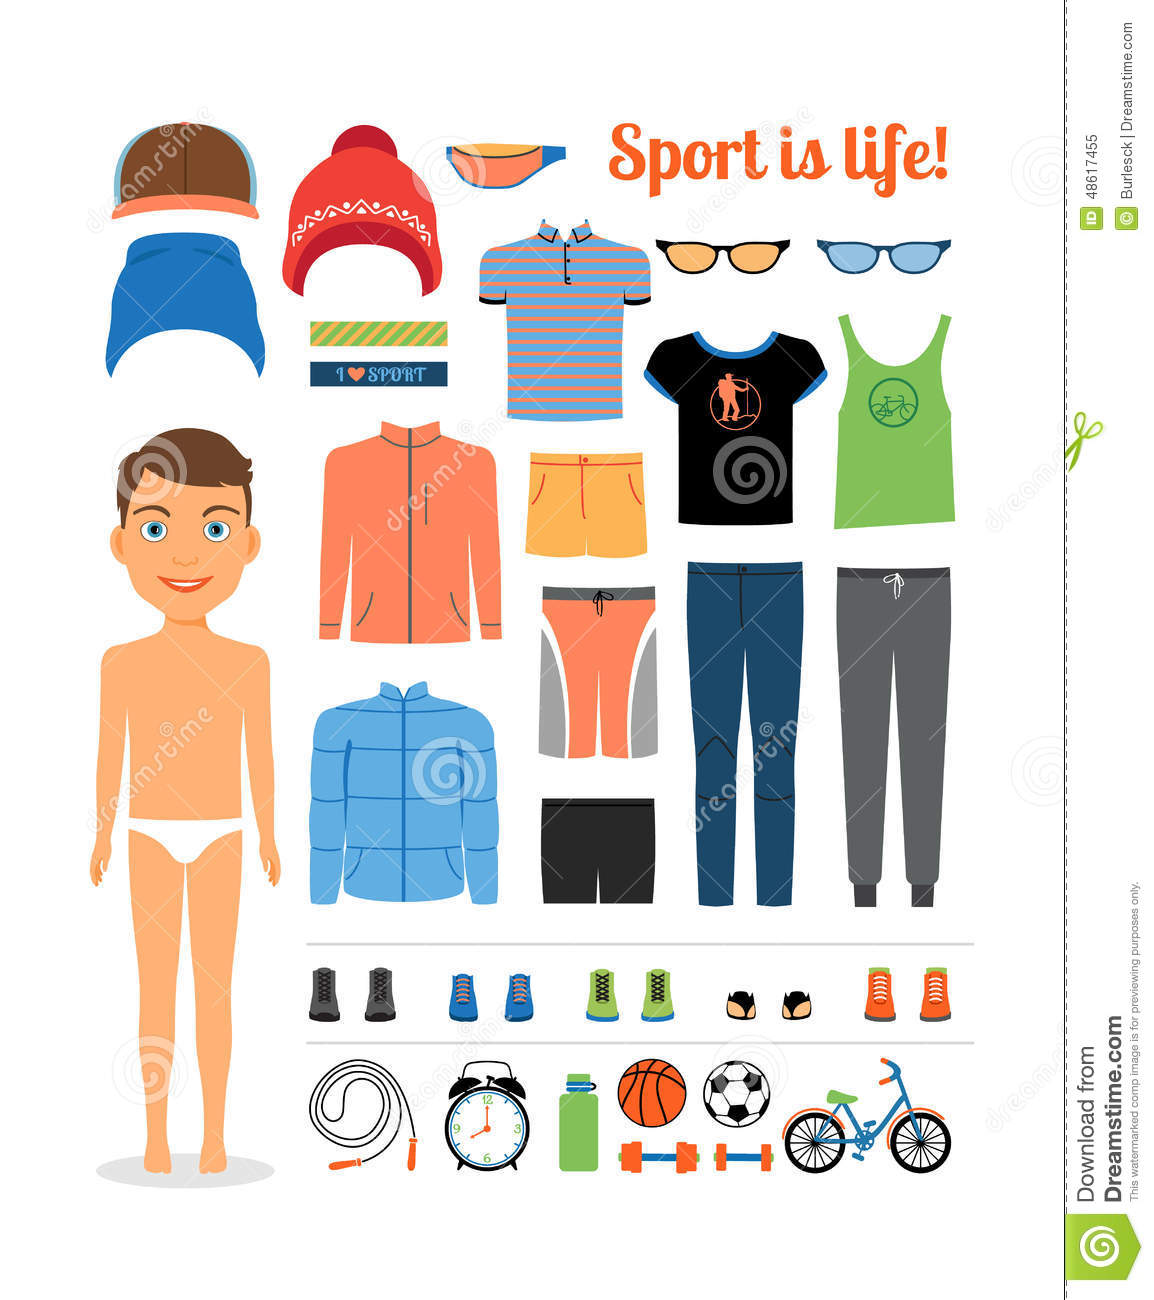 Art Unlimited Sportswear: Sport Boy. Clothing And Sports Equipment For Stock Vector